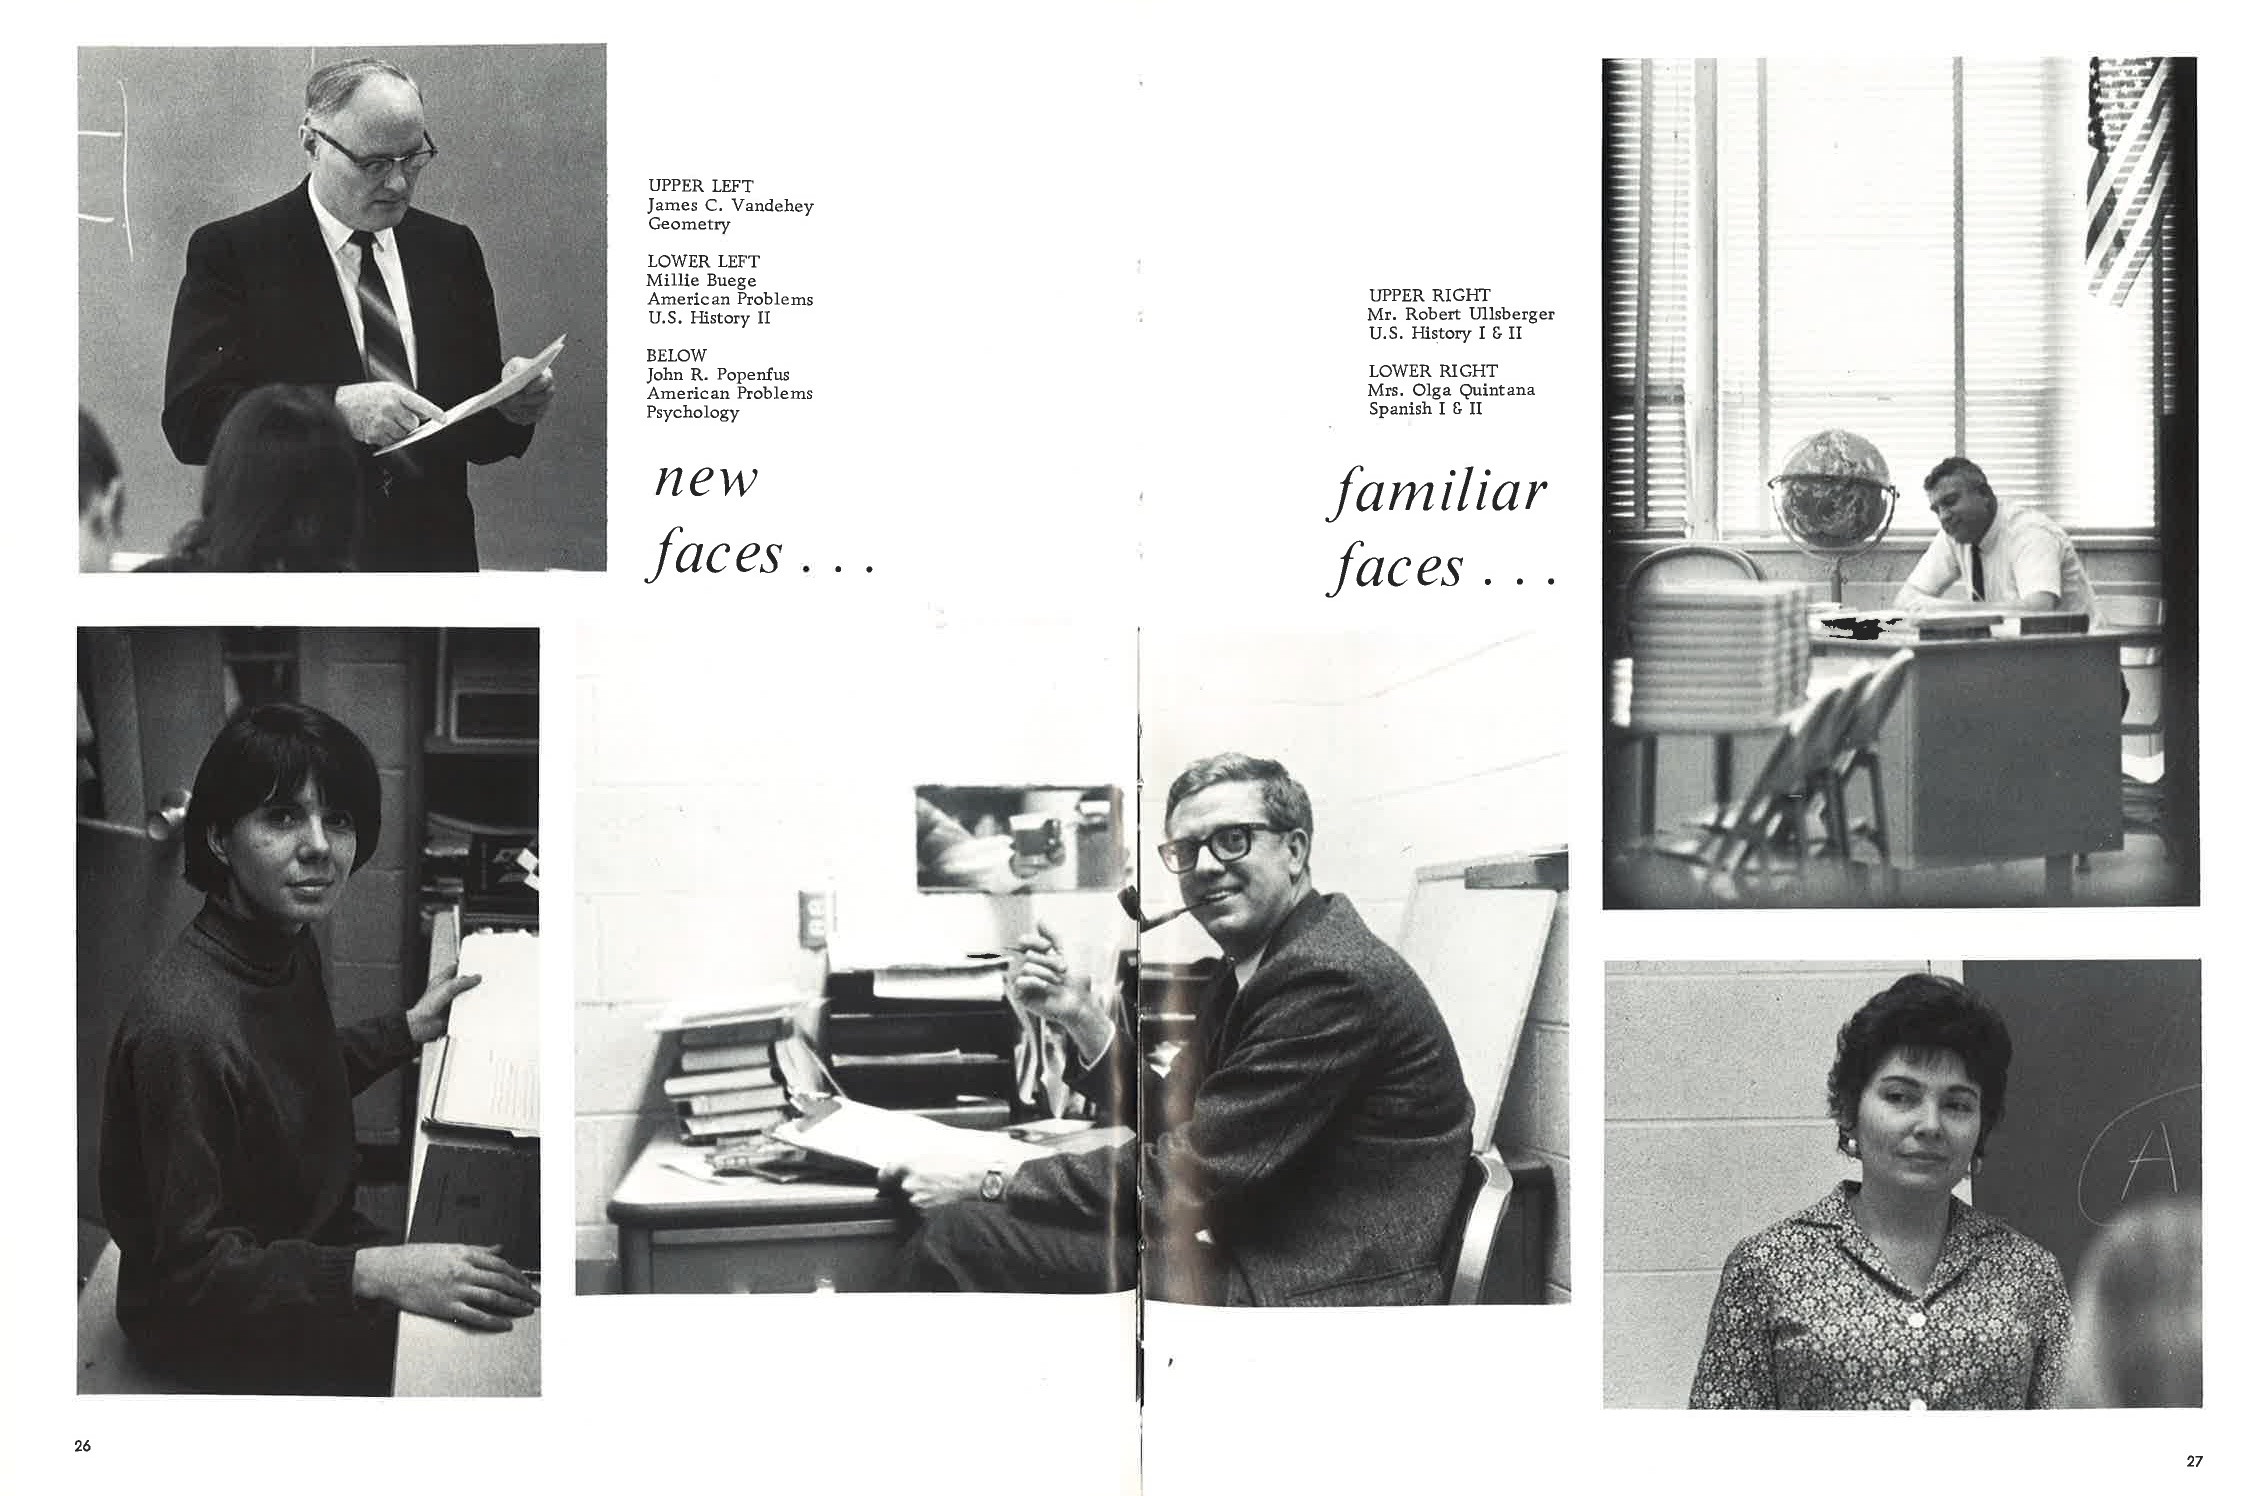 1970_Yearbook_26-27.jpg